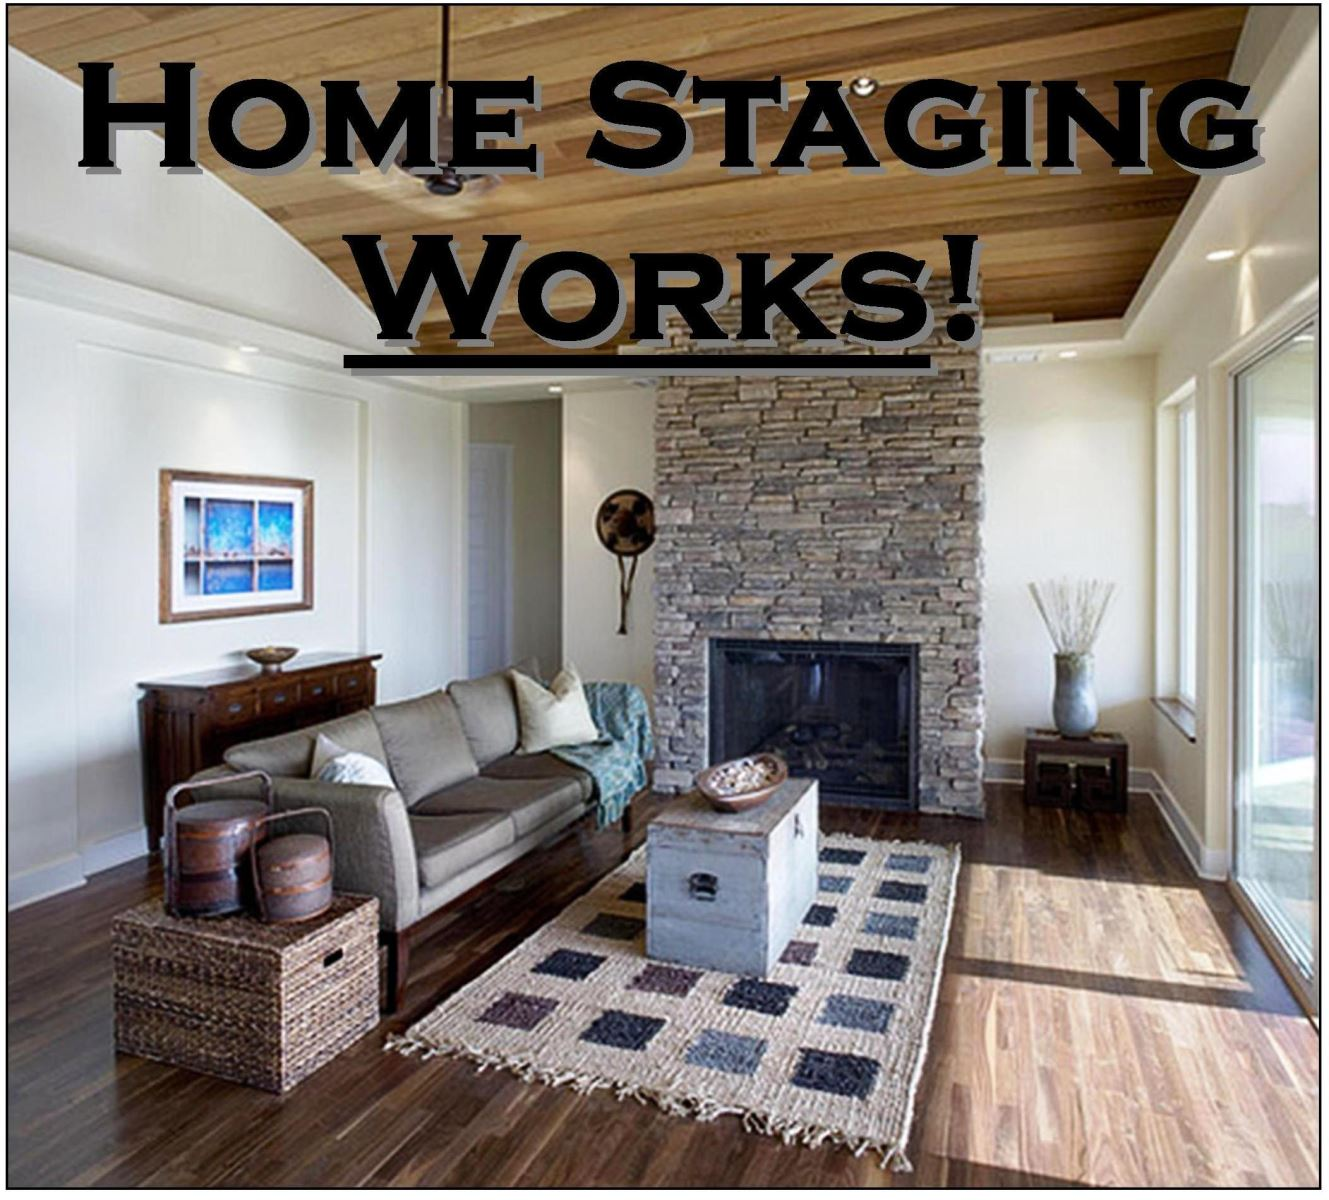 How To Stage A House On A Budget And Without Furniture? Plus Before And After Examples